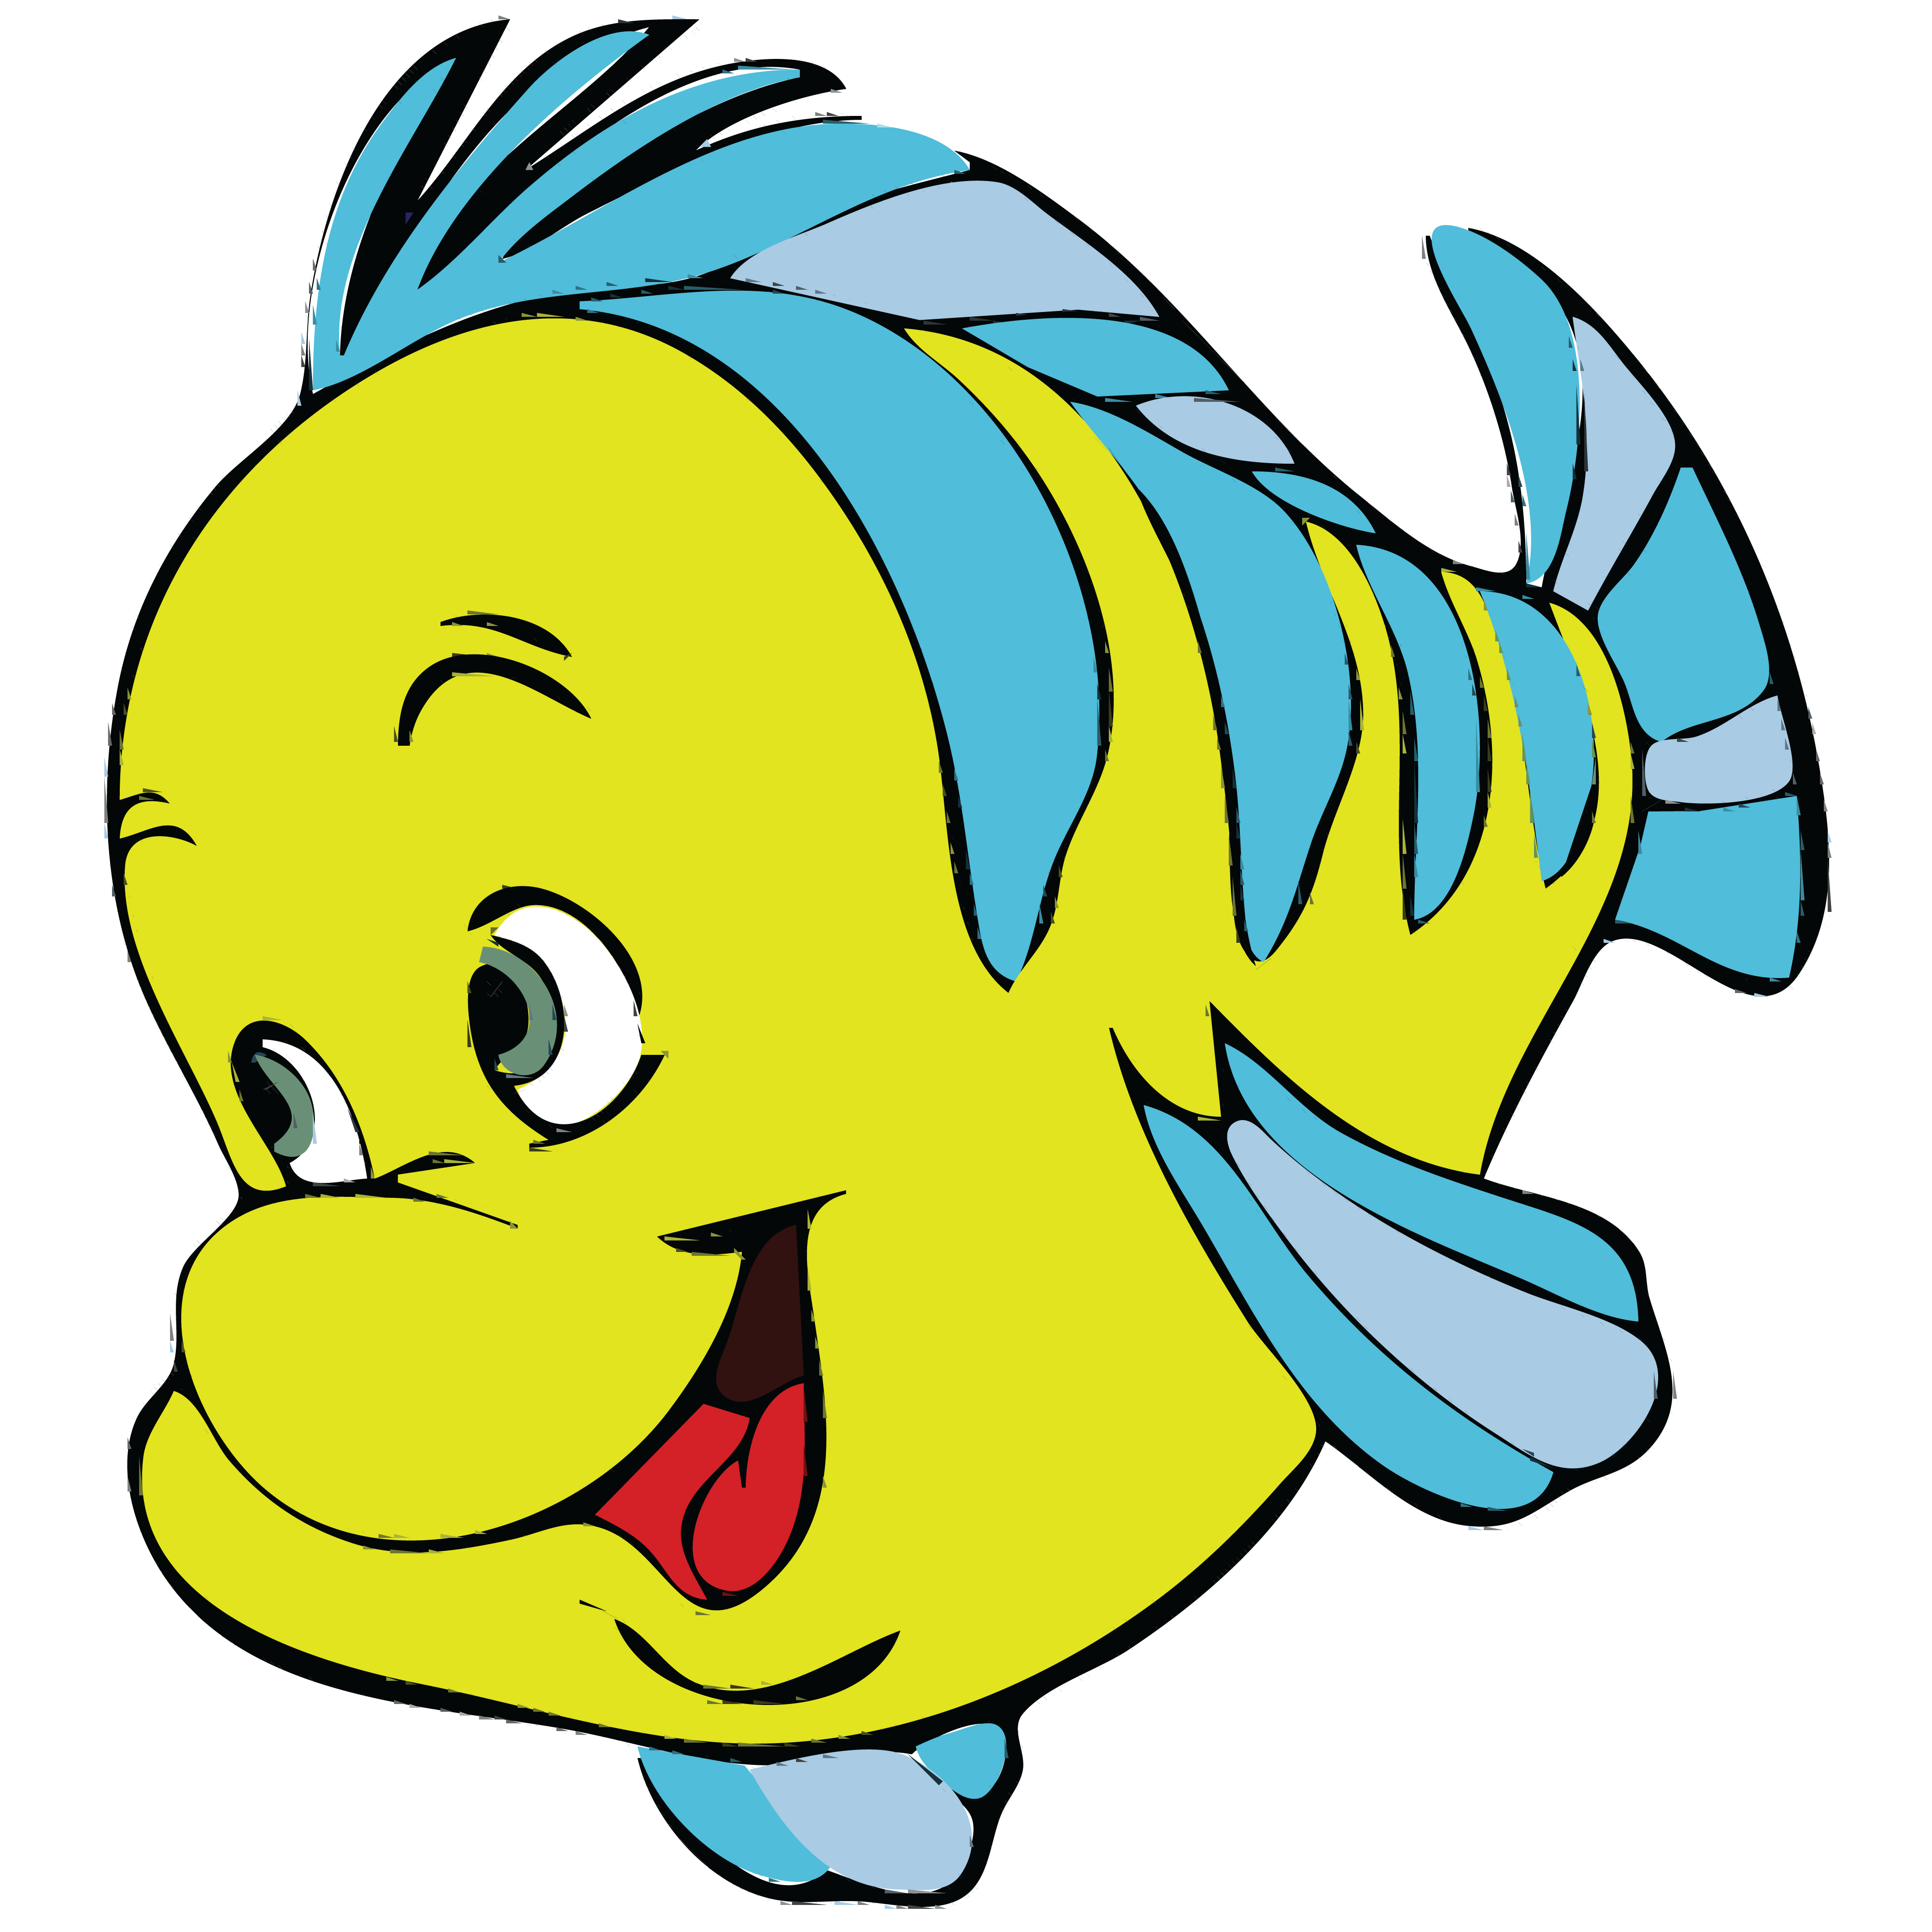 4000x4000 Free Clipart Of A Fish From Little Mermaid, Flounder